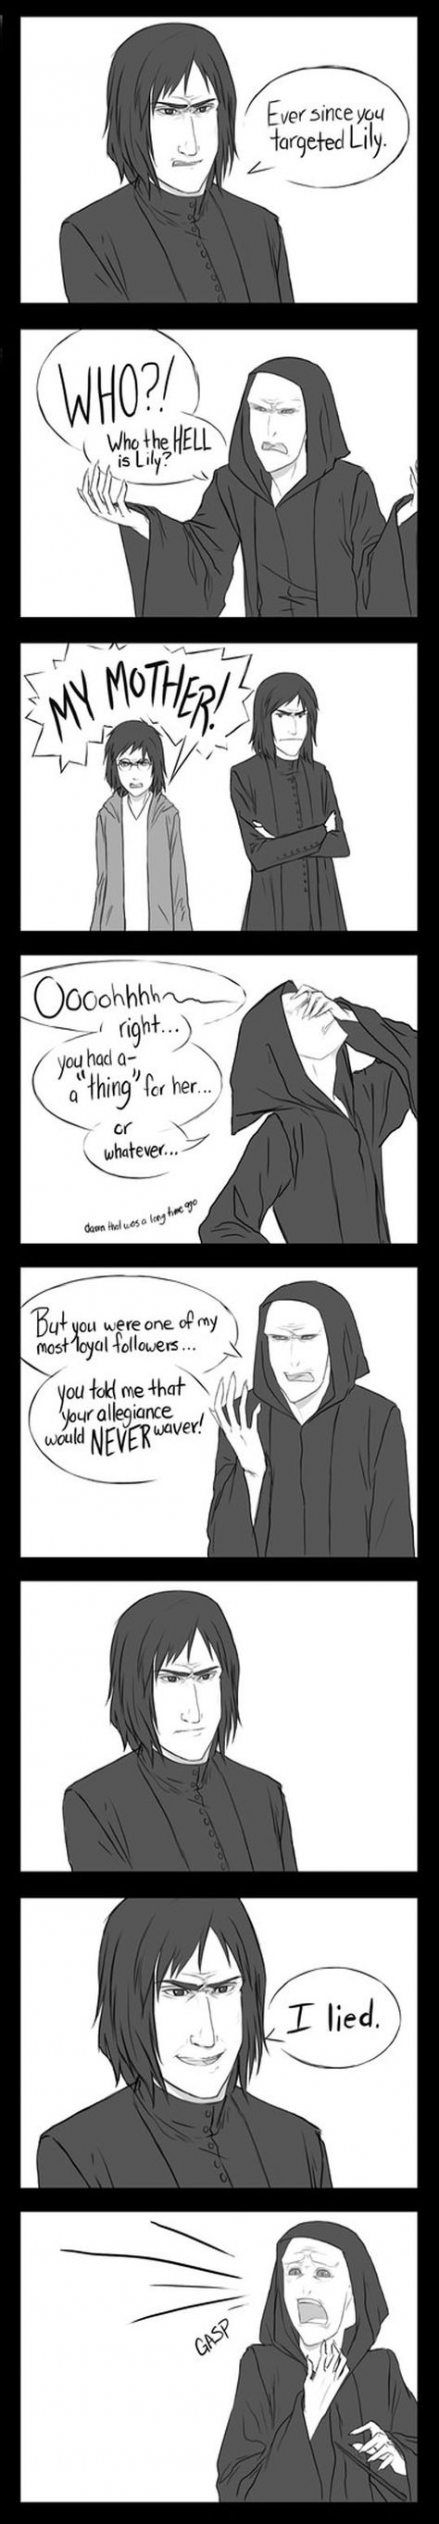 61 Ideas Funny Harry Potter Comics Guys Harry Potter Comics Harry Potter Funny Pictures Harry Potter Pictures